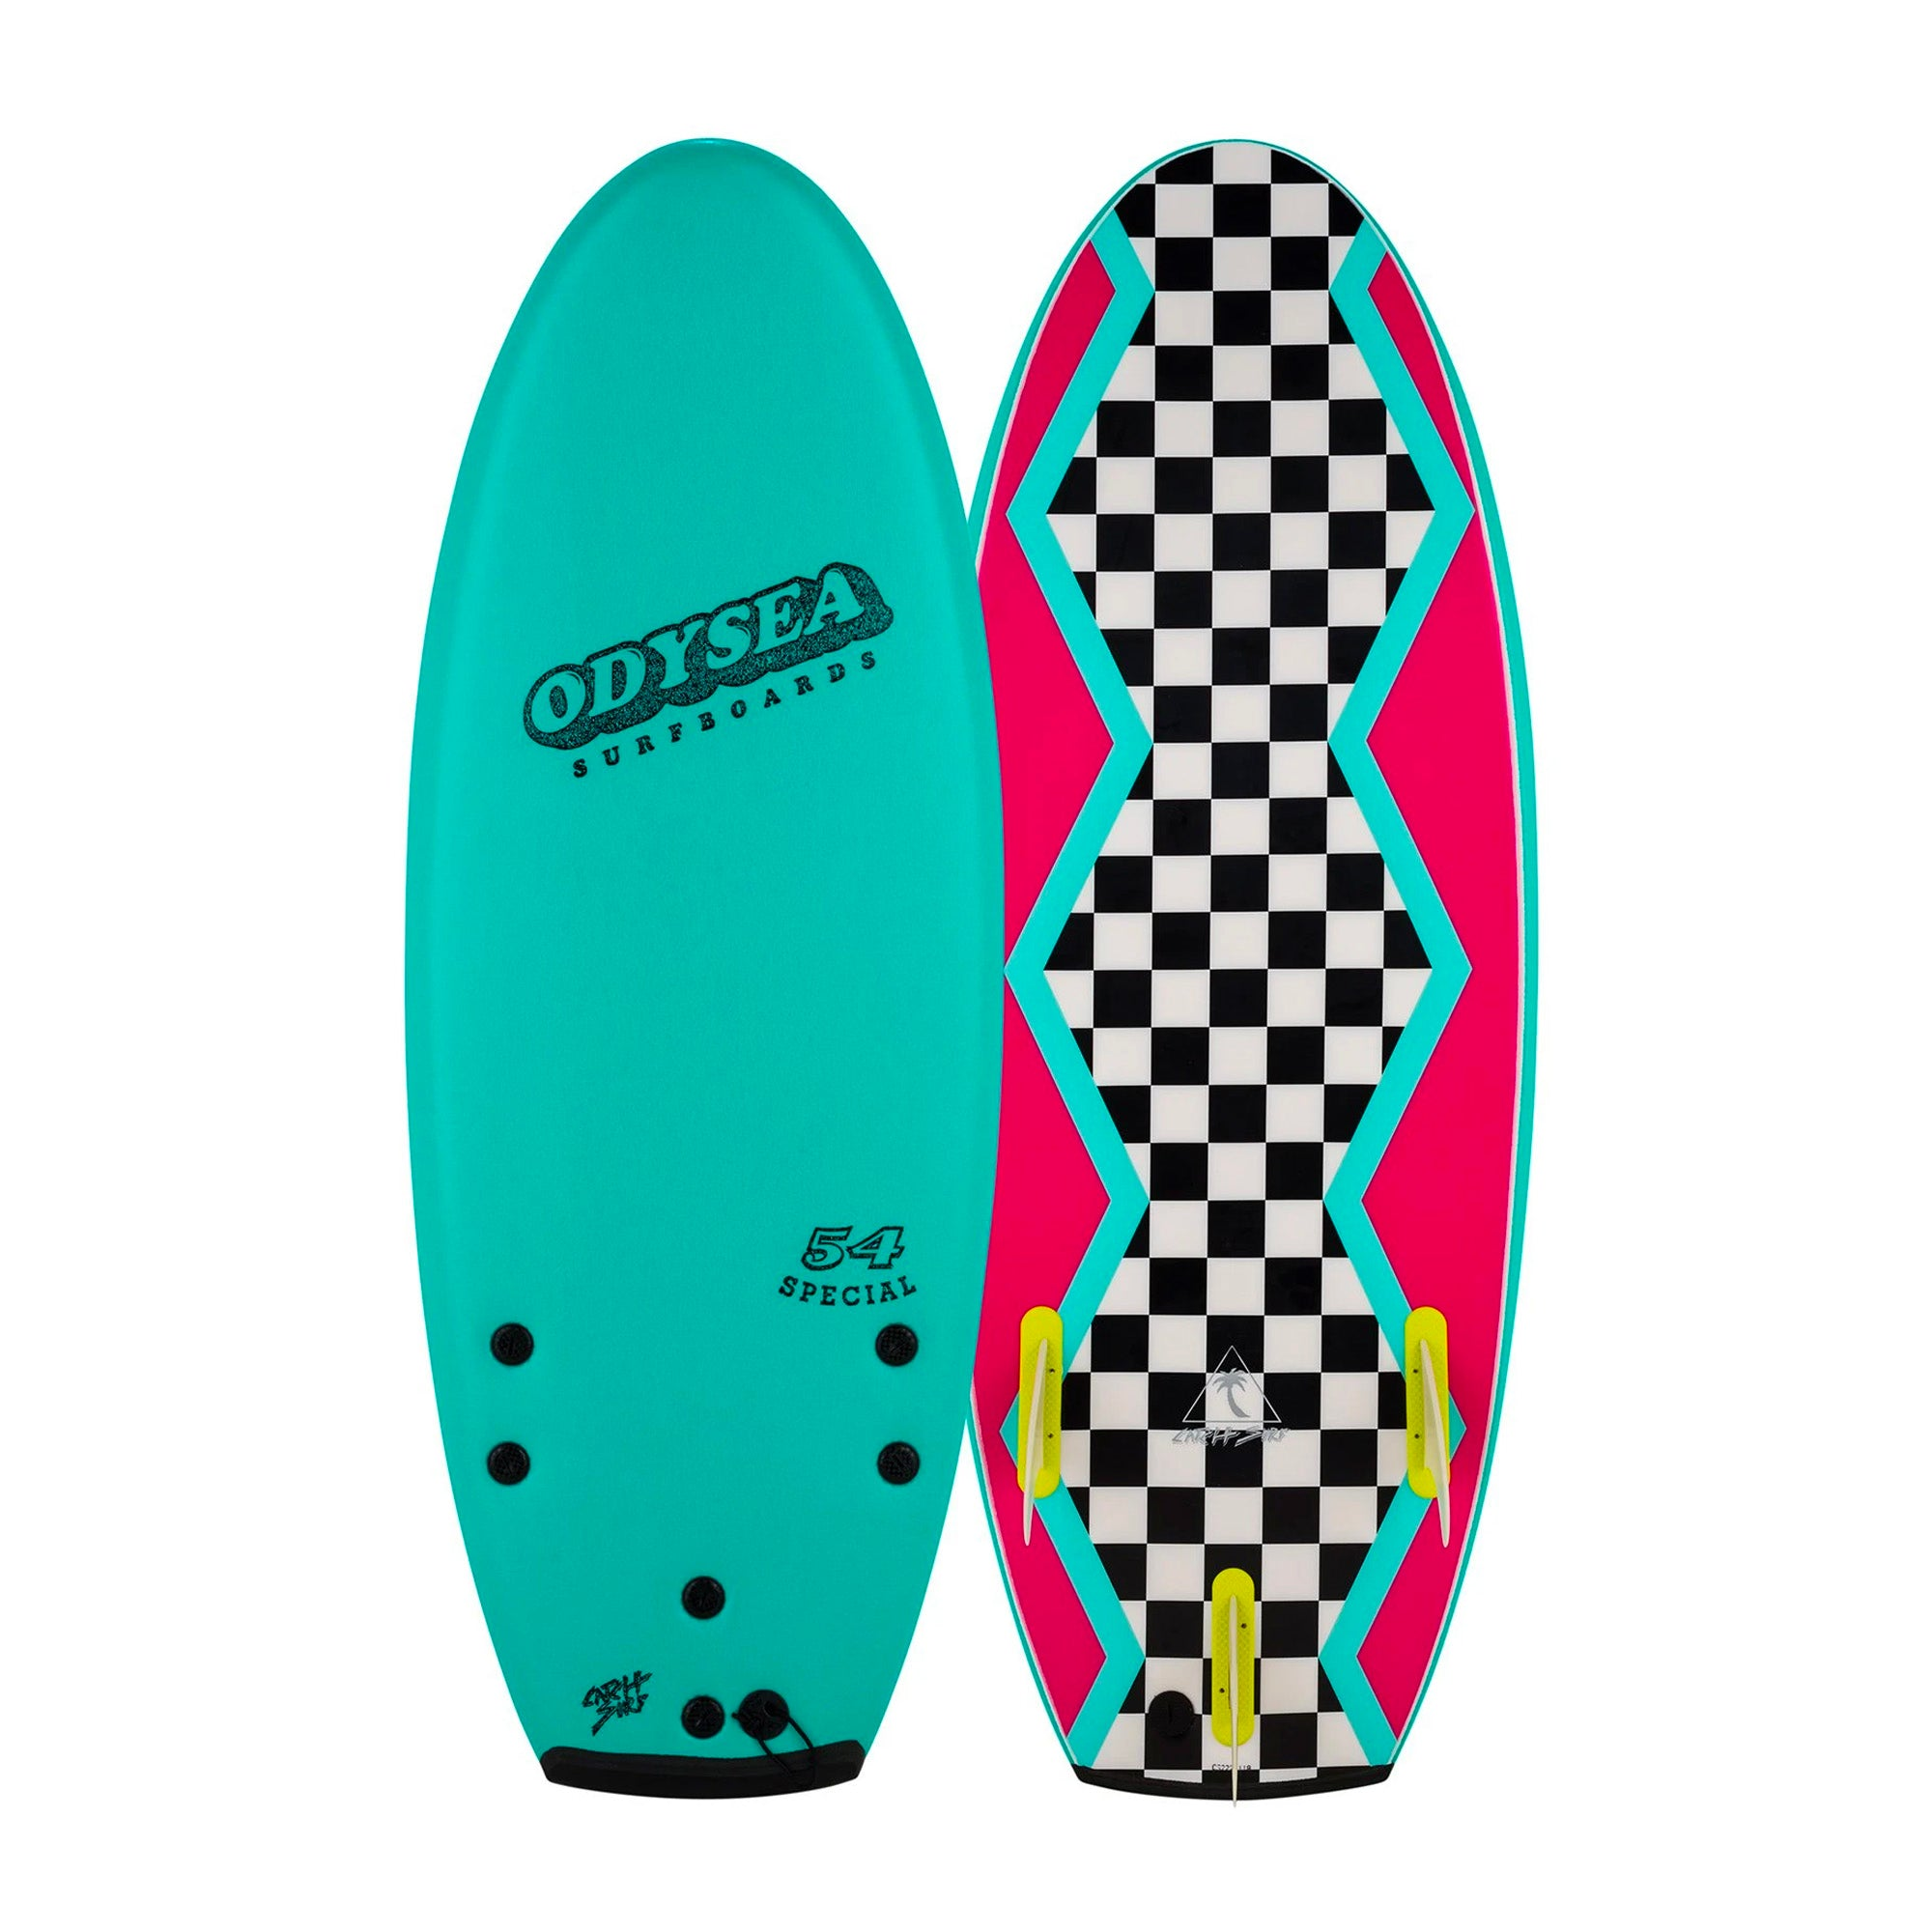 Catch Surf Odysea Special 54 Thruster Soft Surfboard